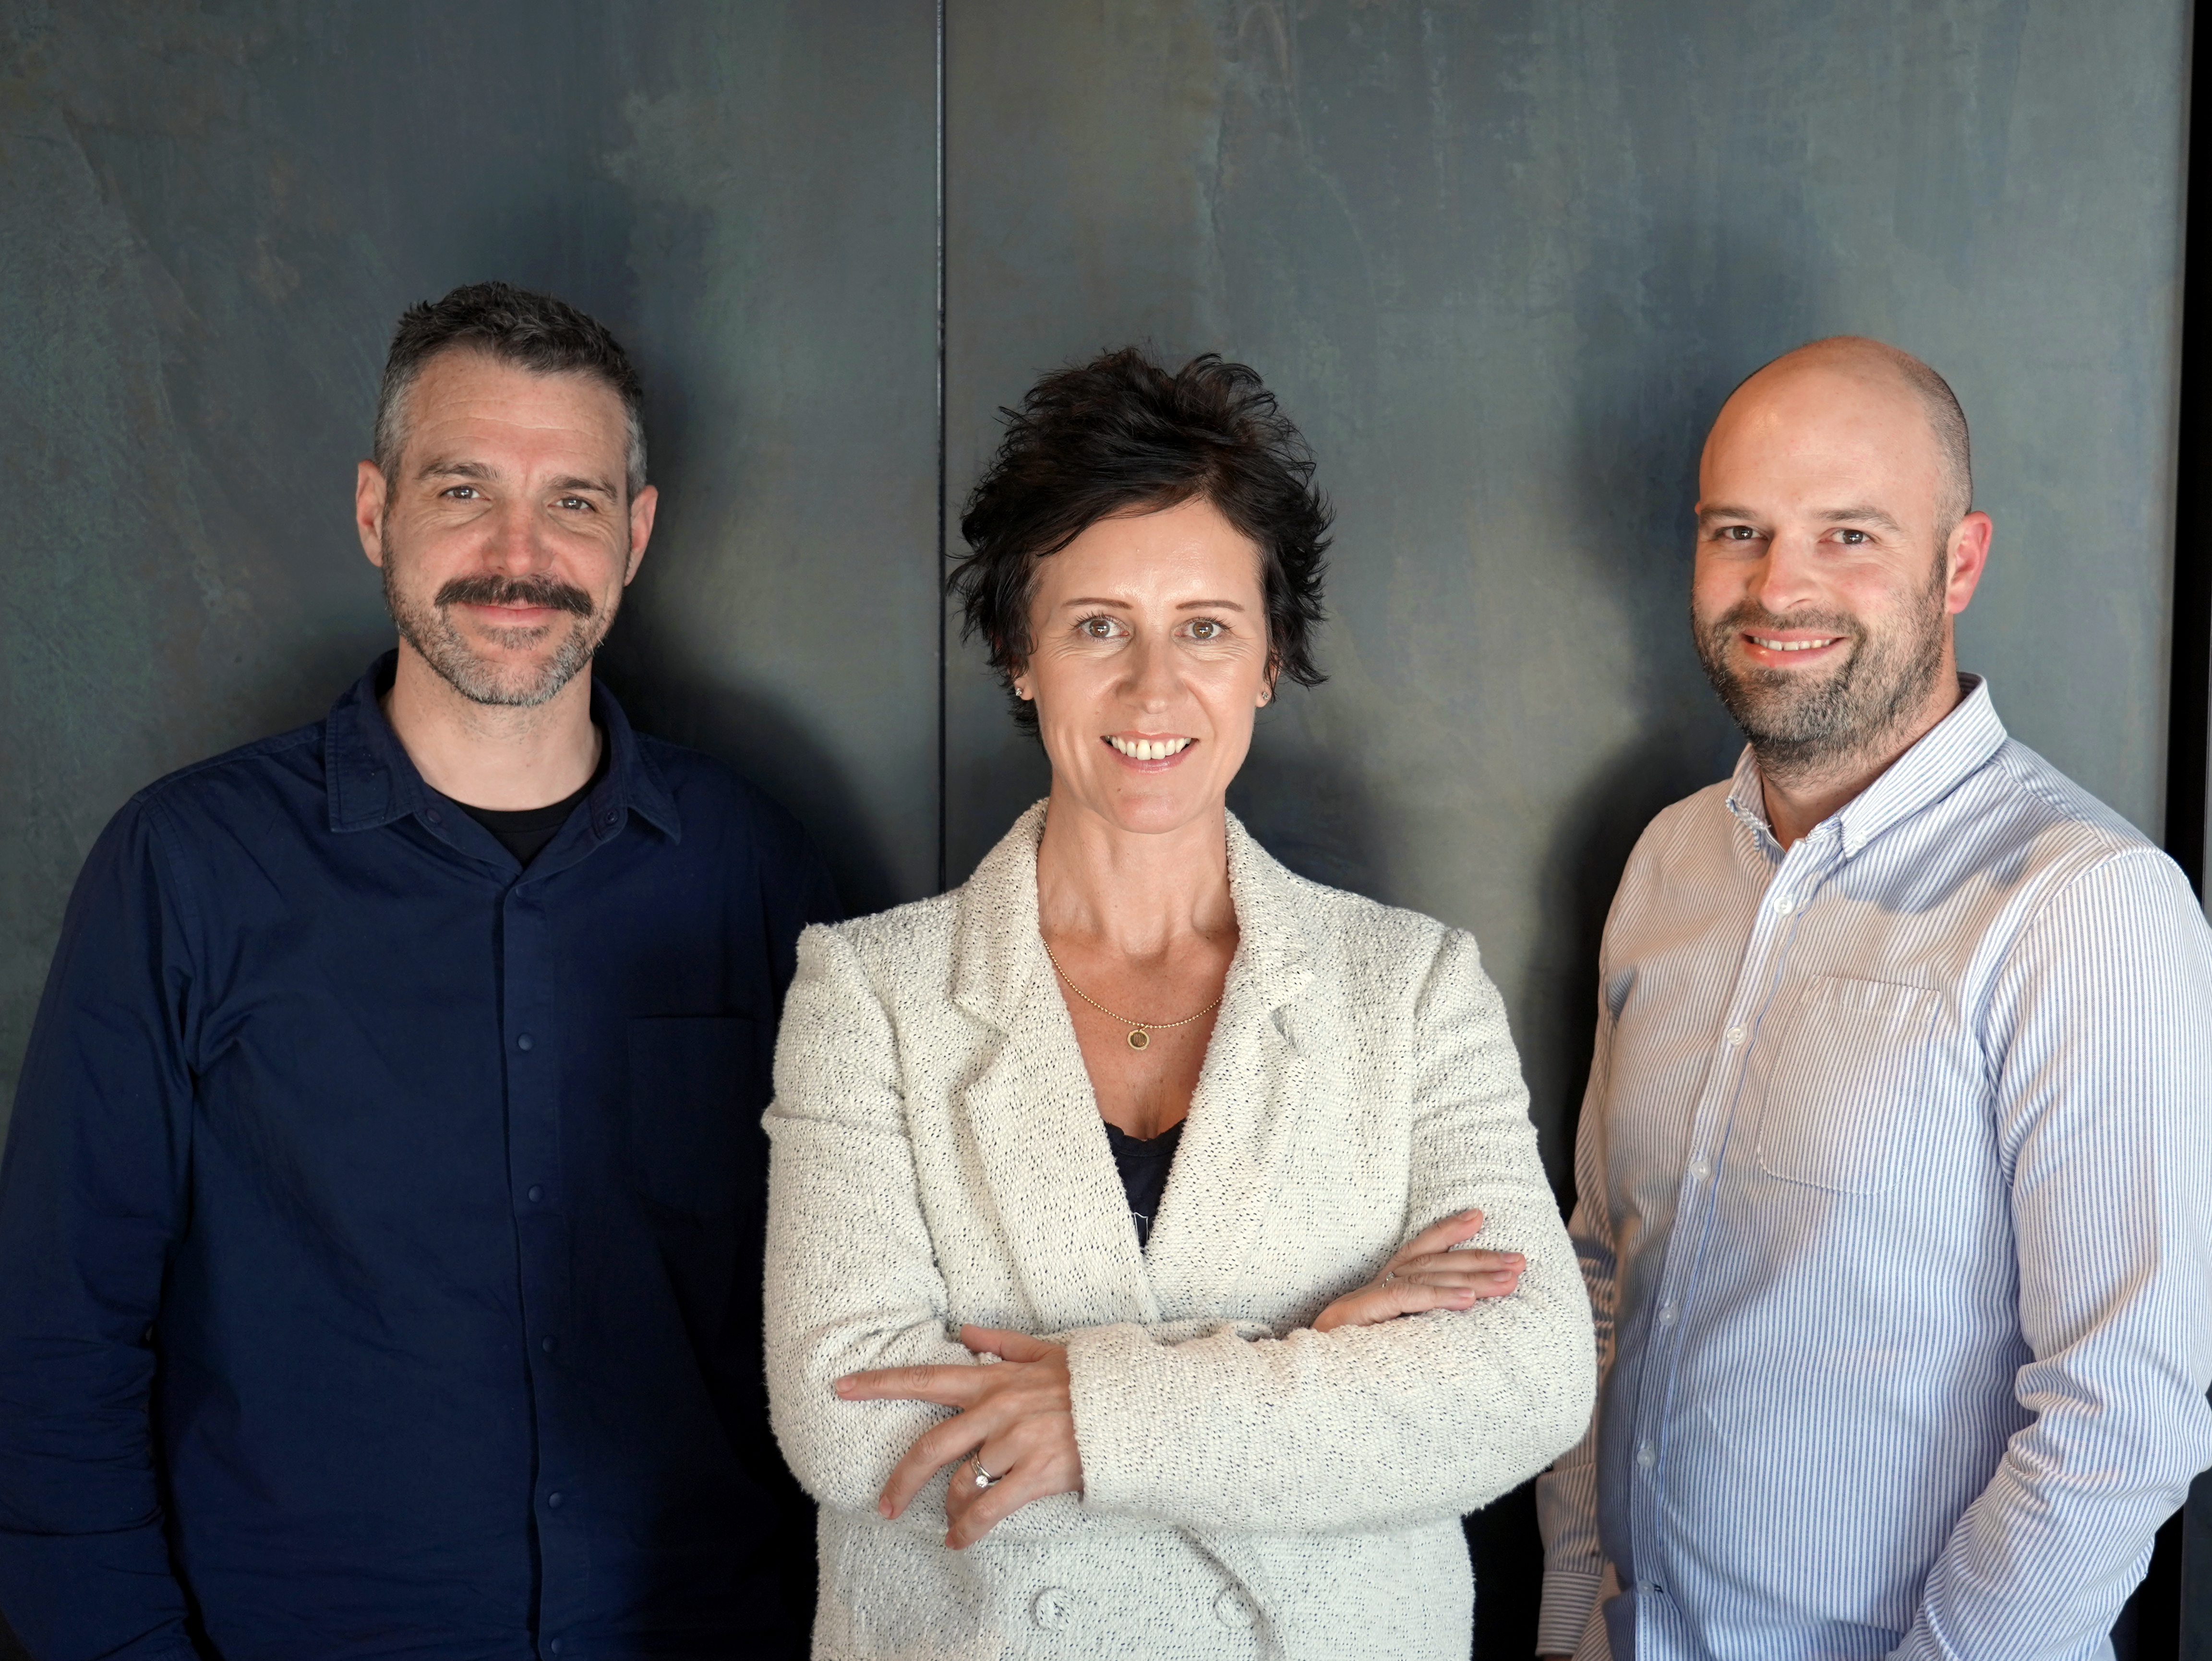 DDB Group New Zealand launches digital agency Tribal Worldwide New Zealand ~ led by managing partners Liz Knox, James Blair and Haydn Kerr